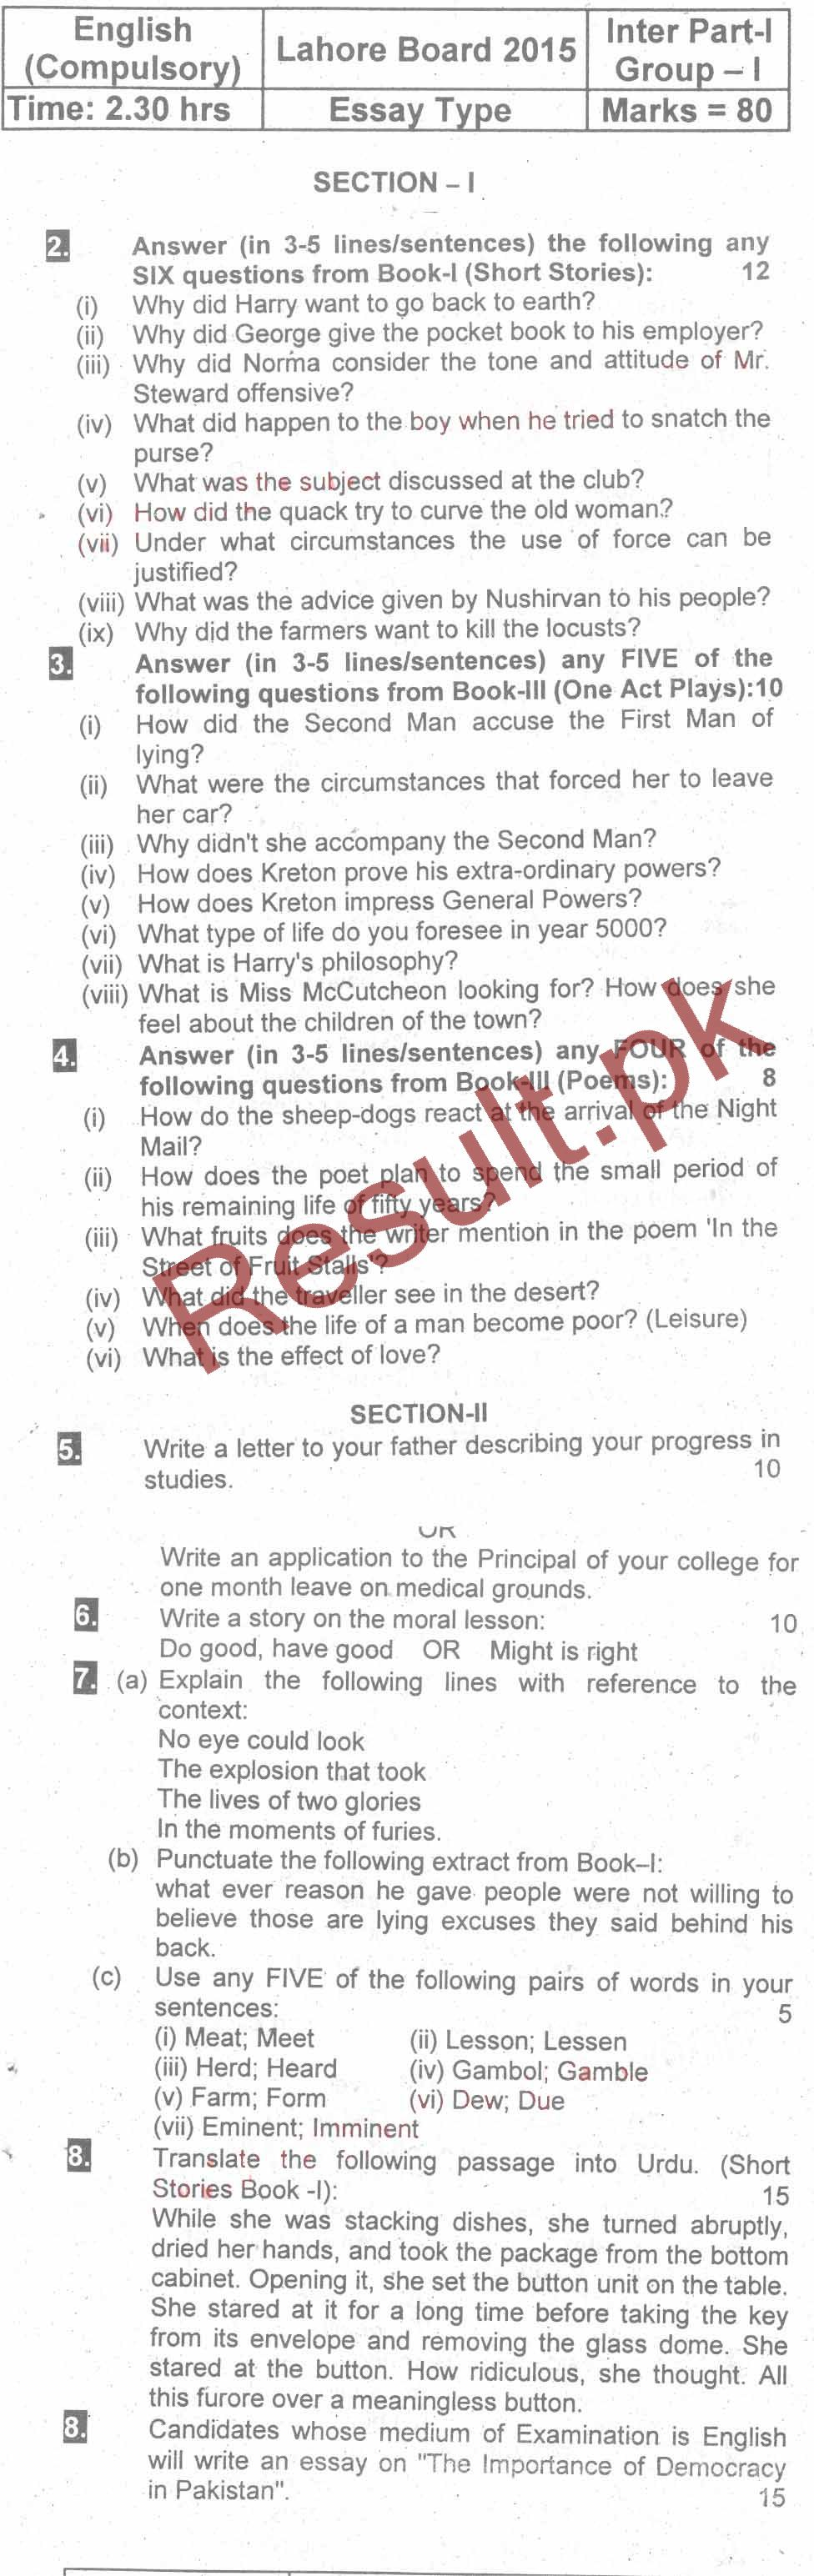 Argumentative Essay Thesis Statement Essaywriterscom Review Essays On Science And Religion also How To Use A Thesis Statement In An Essay English Paper  Class Th  Maherlawofficecom How To Write A Thesis Essay